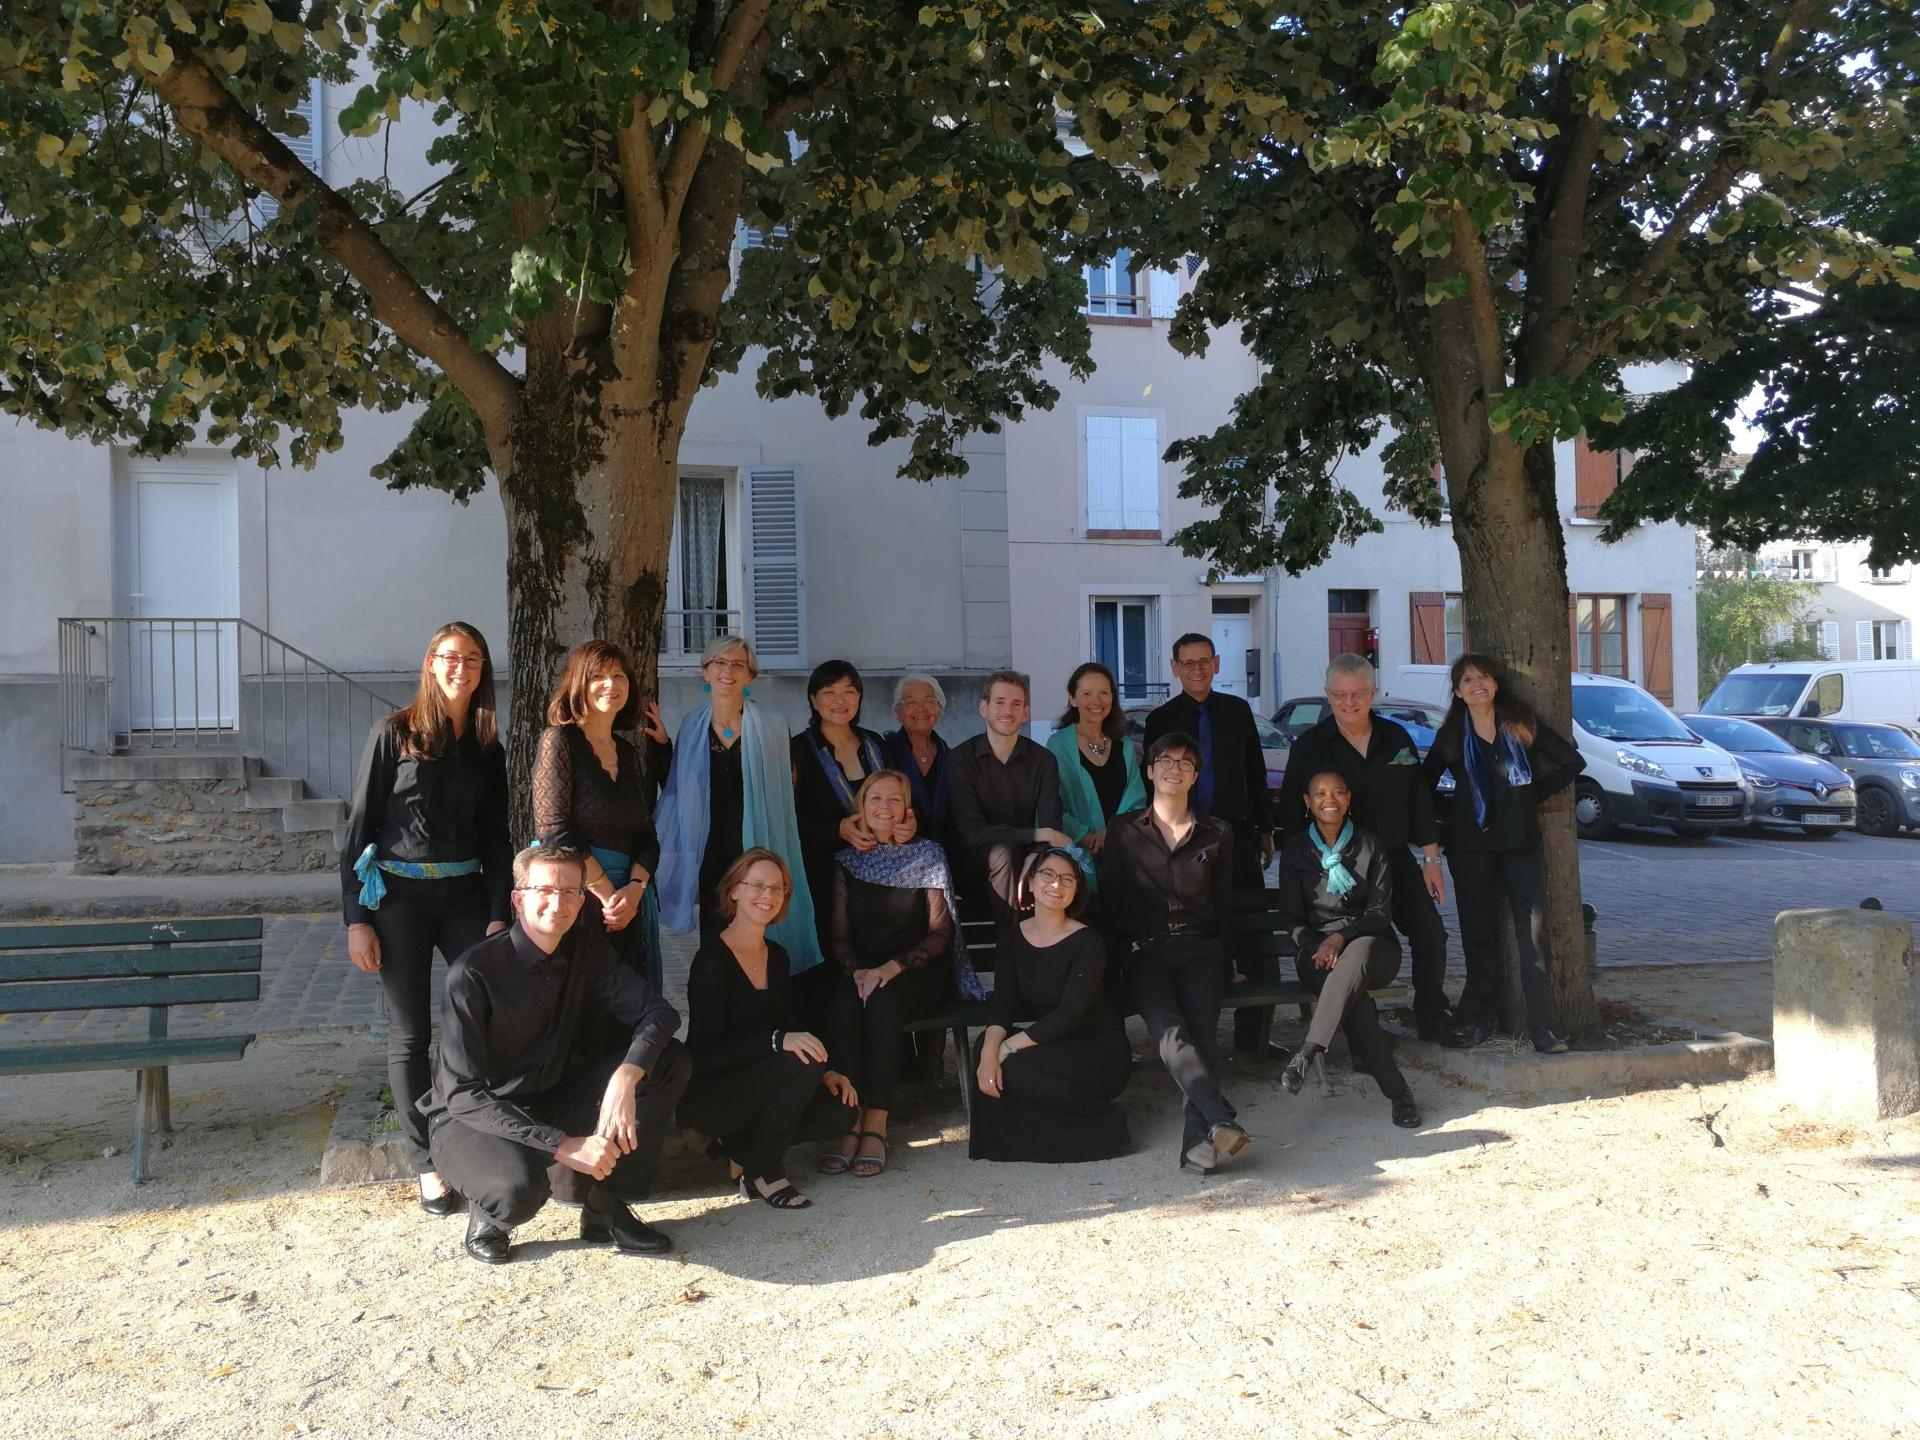 Ensemble vocal le 30 juin 2018 à Bièvres